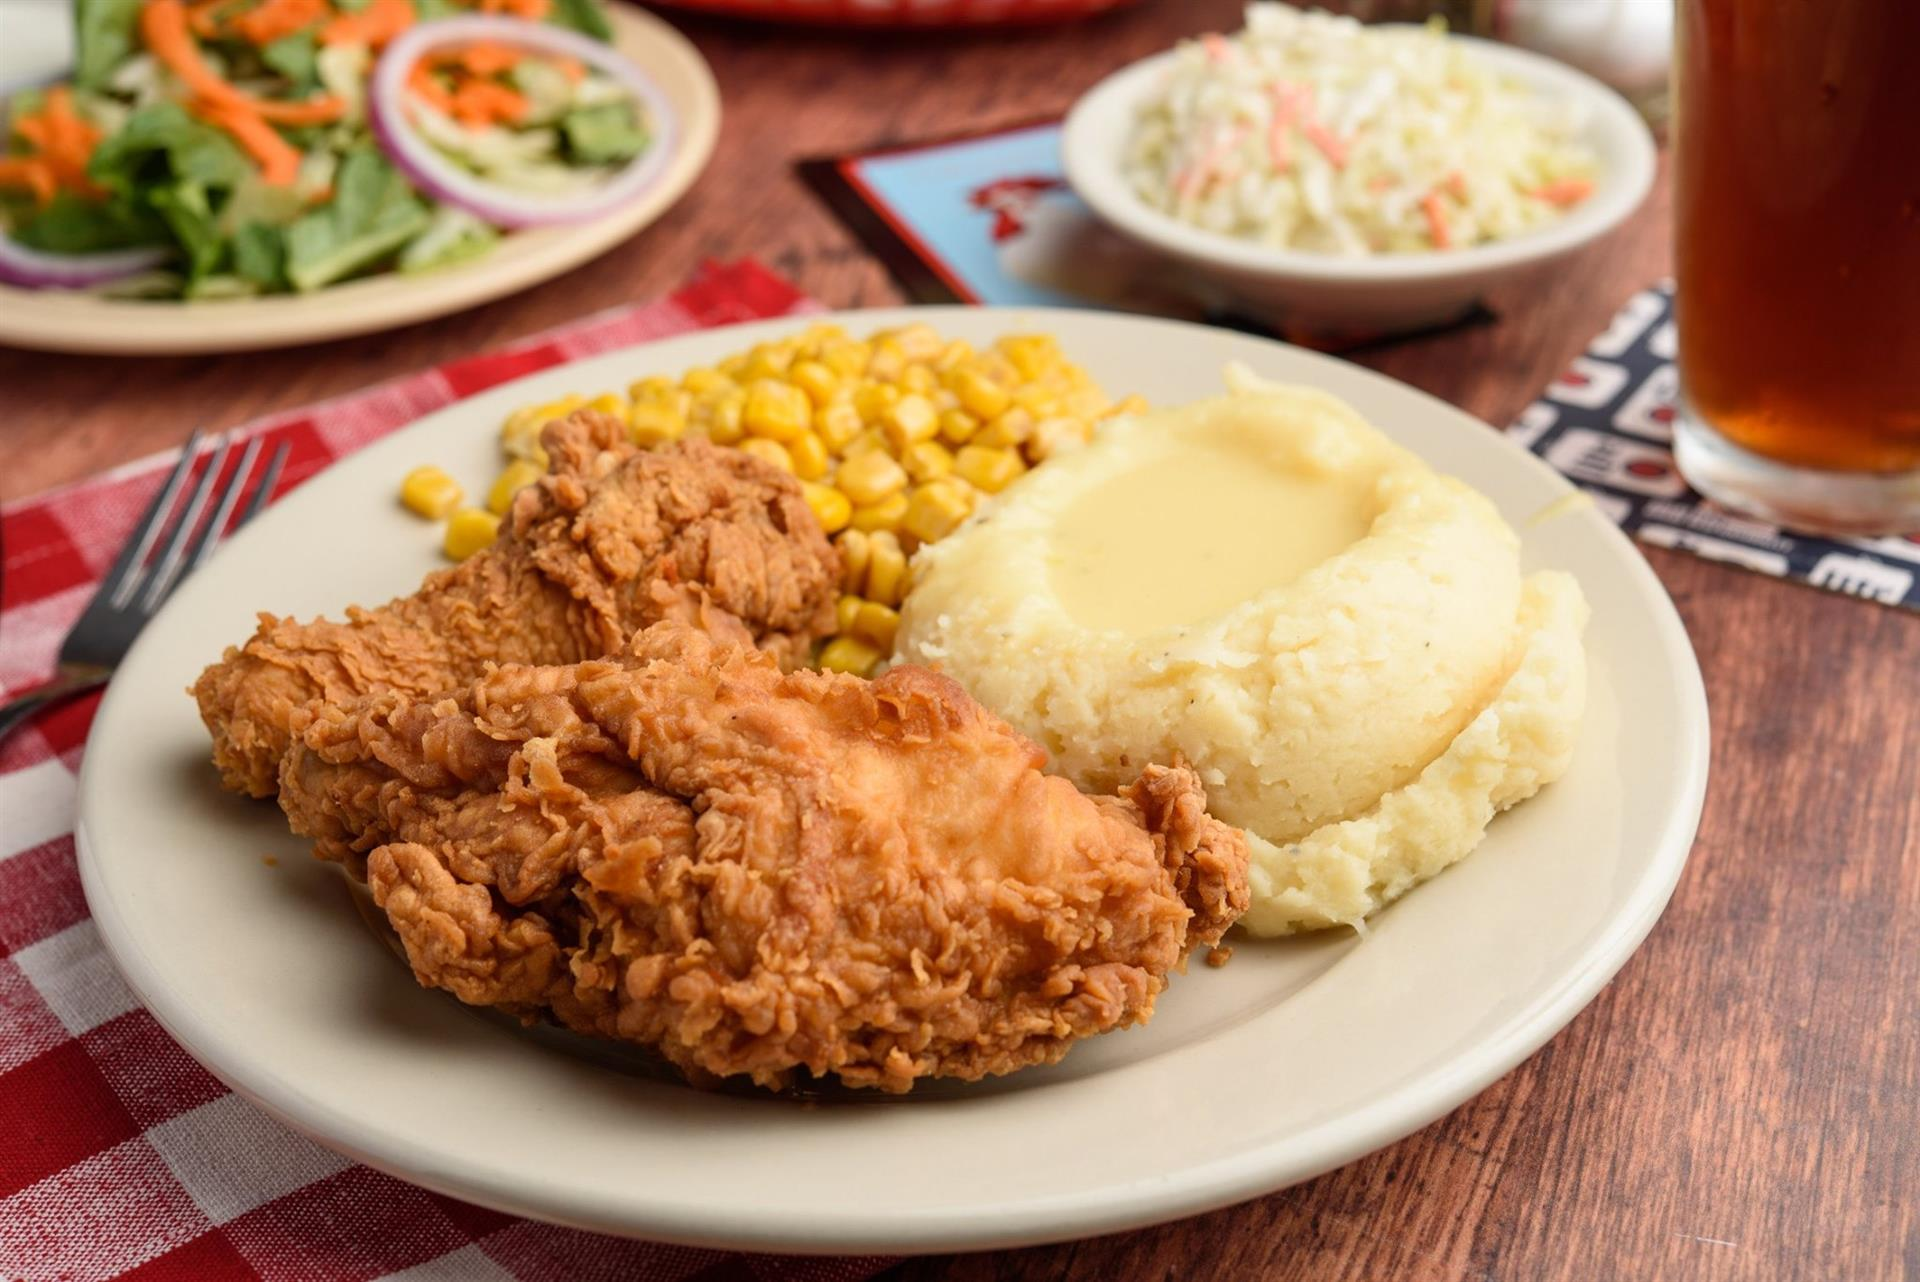 Fried Chicken with mashed potatoes and corn topped with gravy